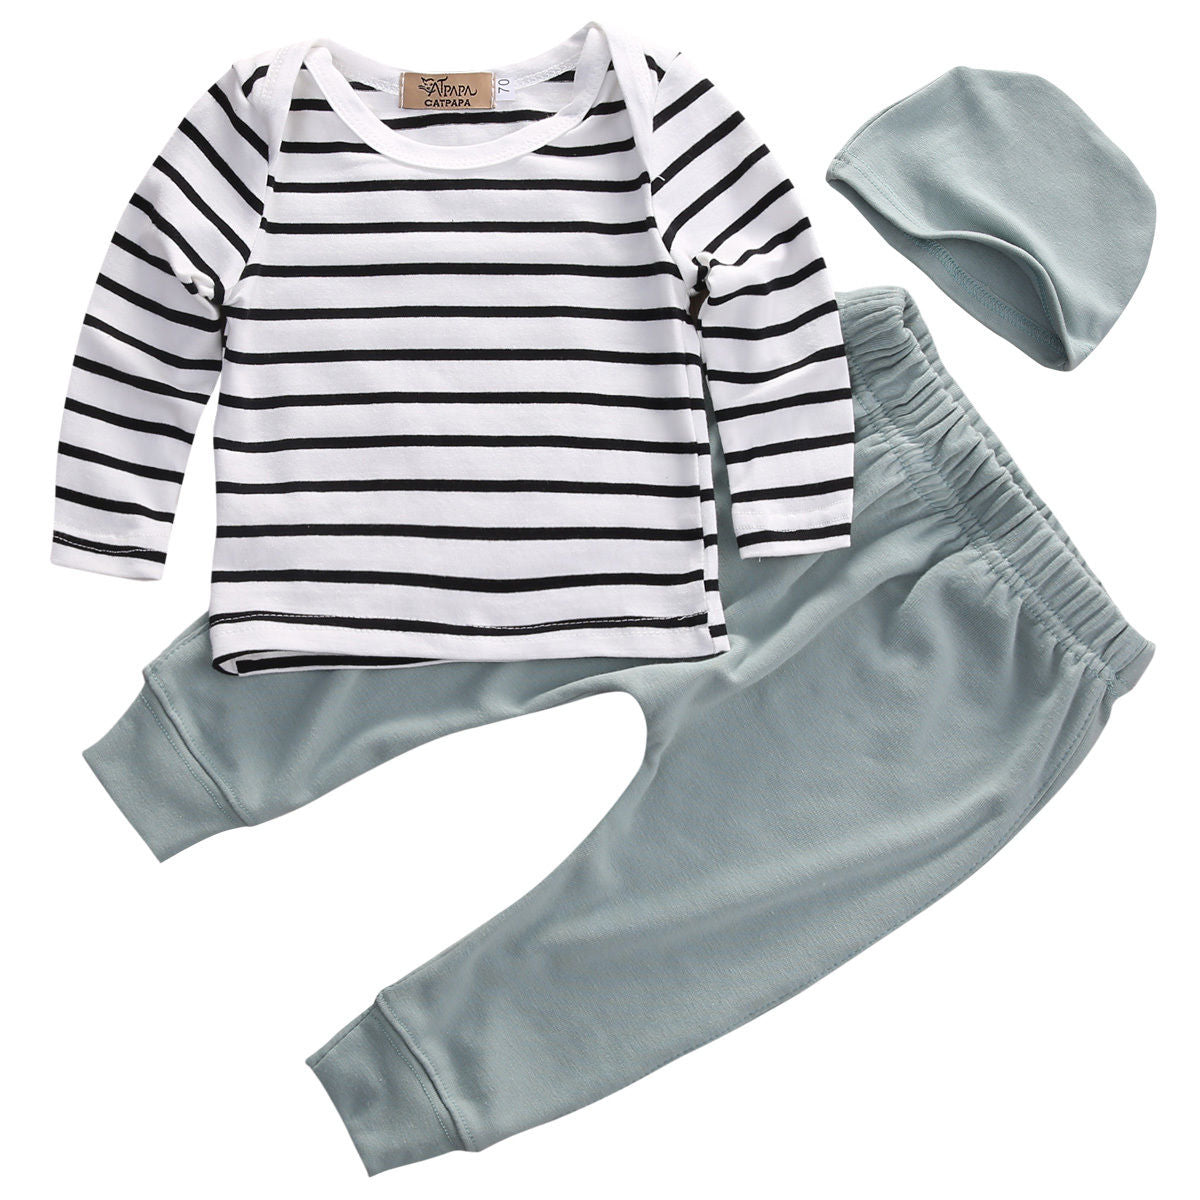 GT 3pc Newborn, Infant, and Toddler Long Sleeve Shirts + Pants + Hat Set